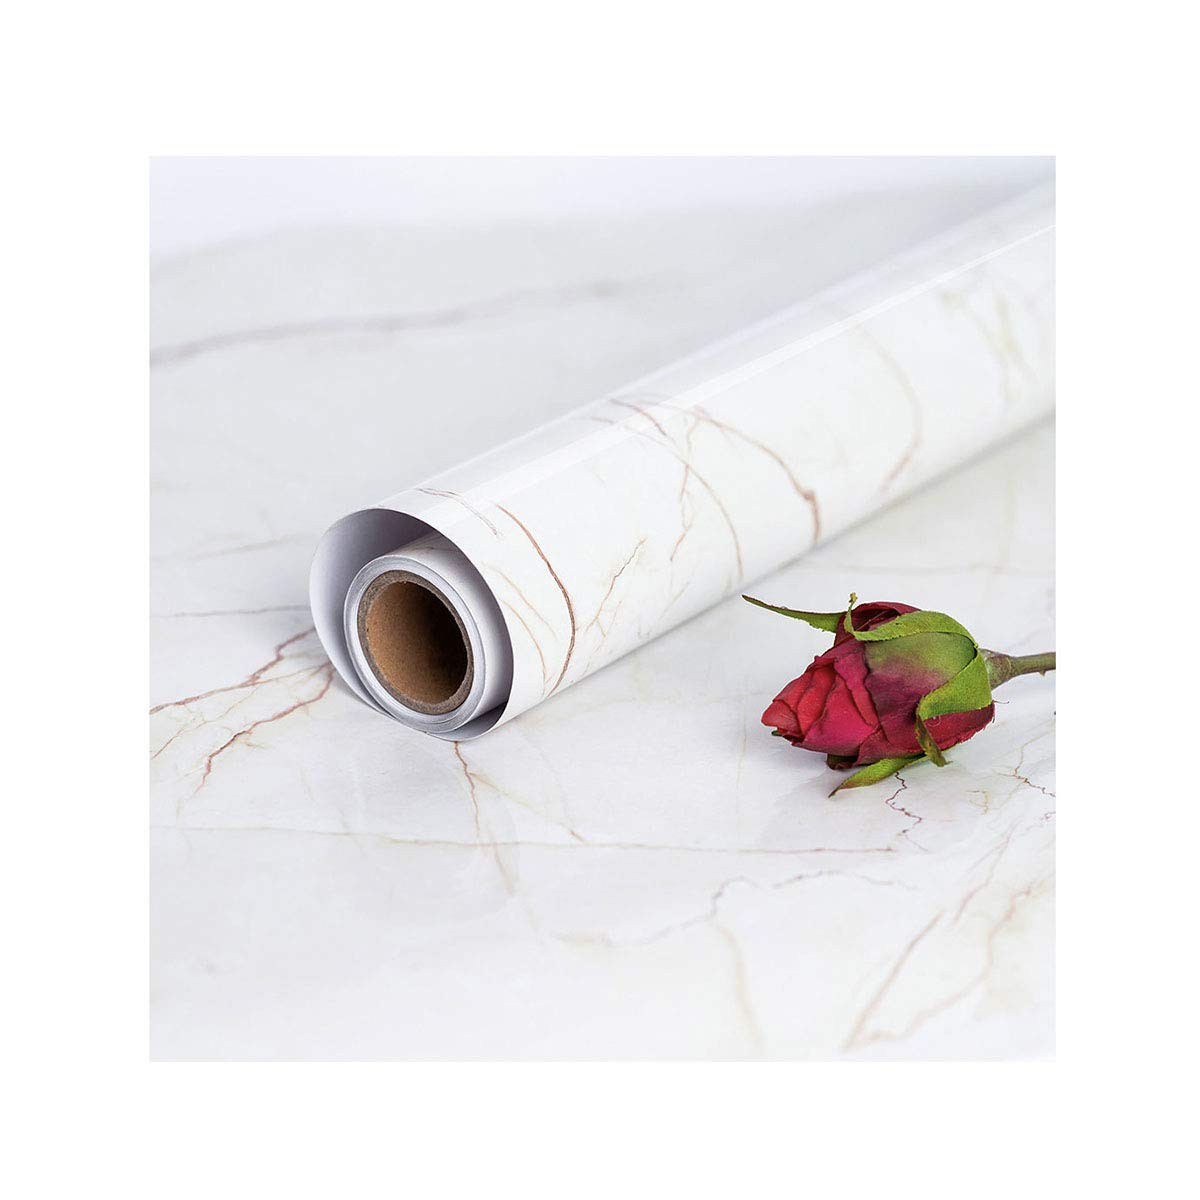 45 cm × 200 cm Marble Contact Paper Film Peel and Stick Countertops Vinyl Wallpaper Sticker Contact Paper Self Adhesive Wallpaper Shelf Liner Table and Door Reform Sheet of Vinyl with Adhesive Re-finished Kitchen Countertop Marble Paper Marble Sticker Mar